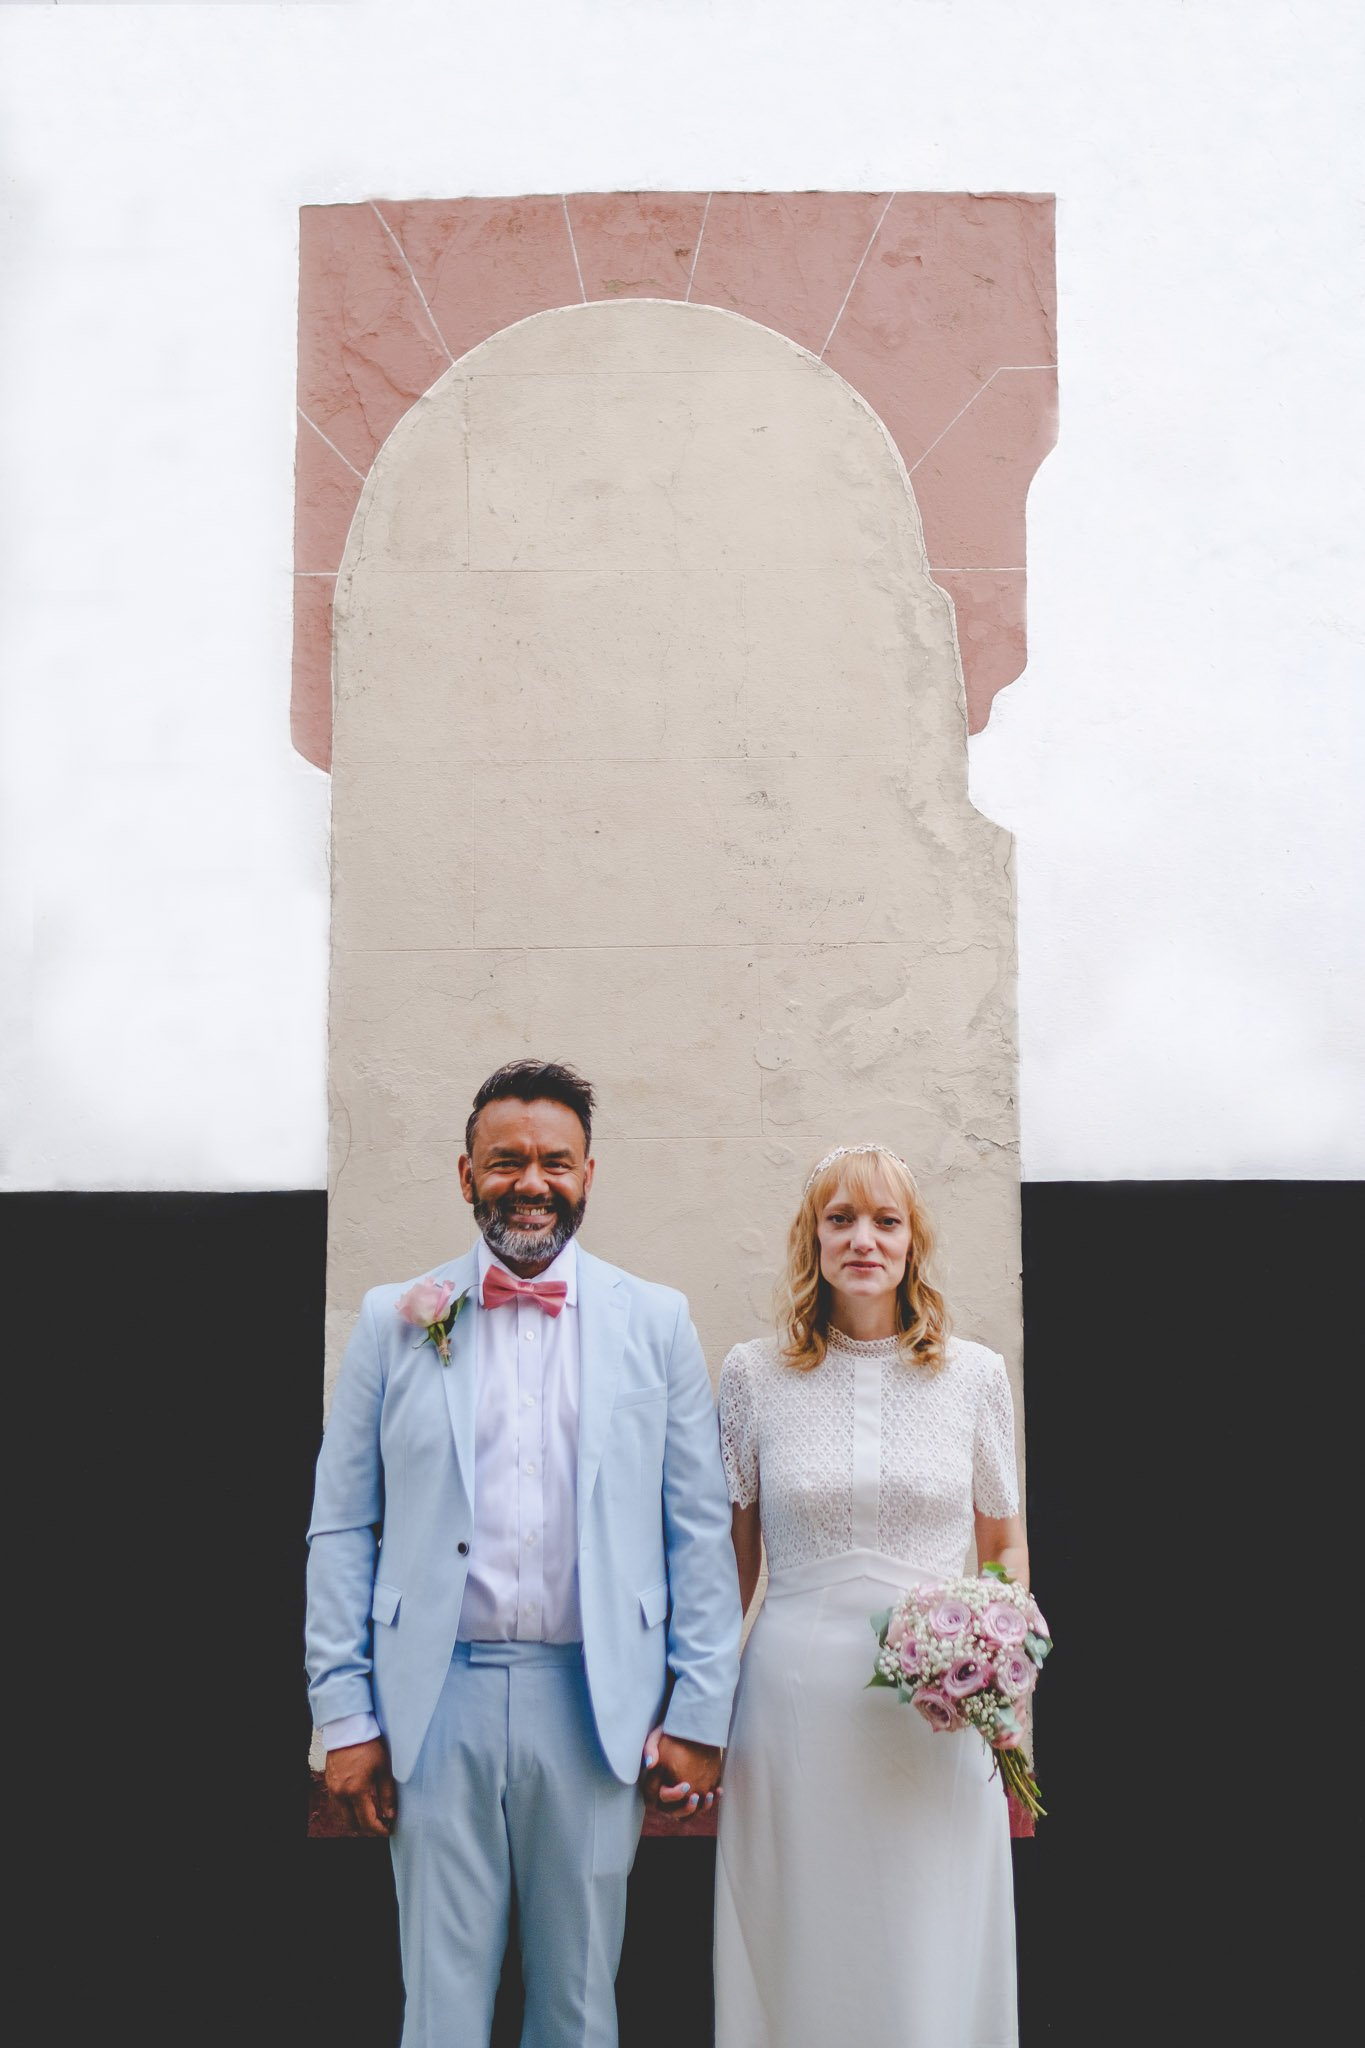 Creative portrait of a bride & groom in front of a wall in London. Photography by thatthingyoupluck.